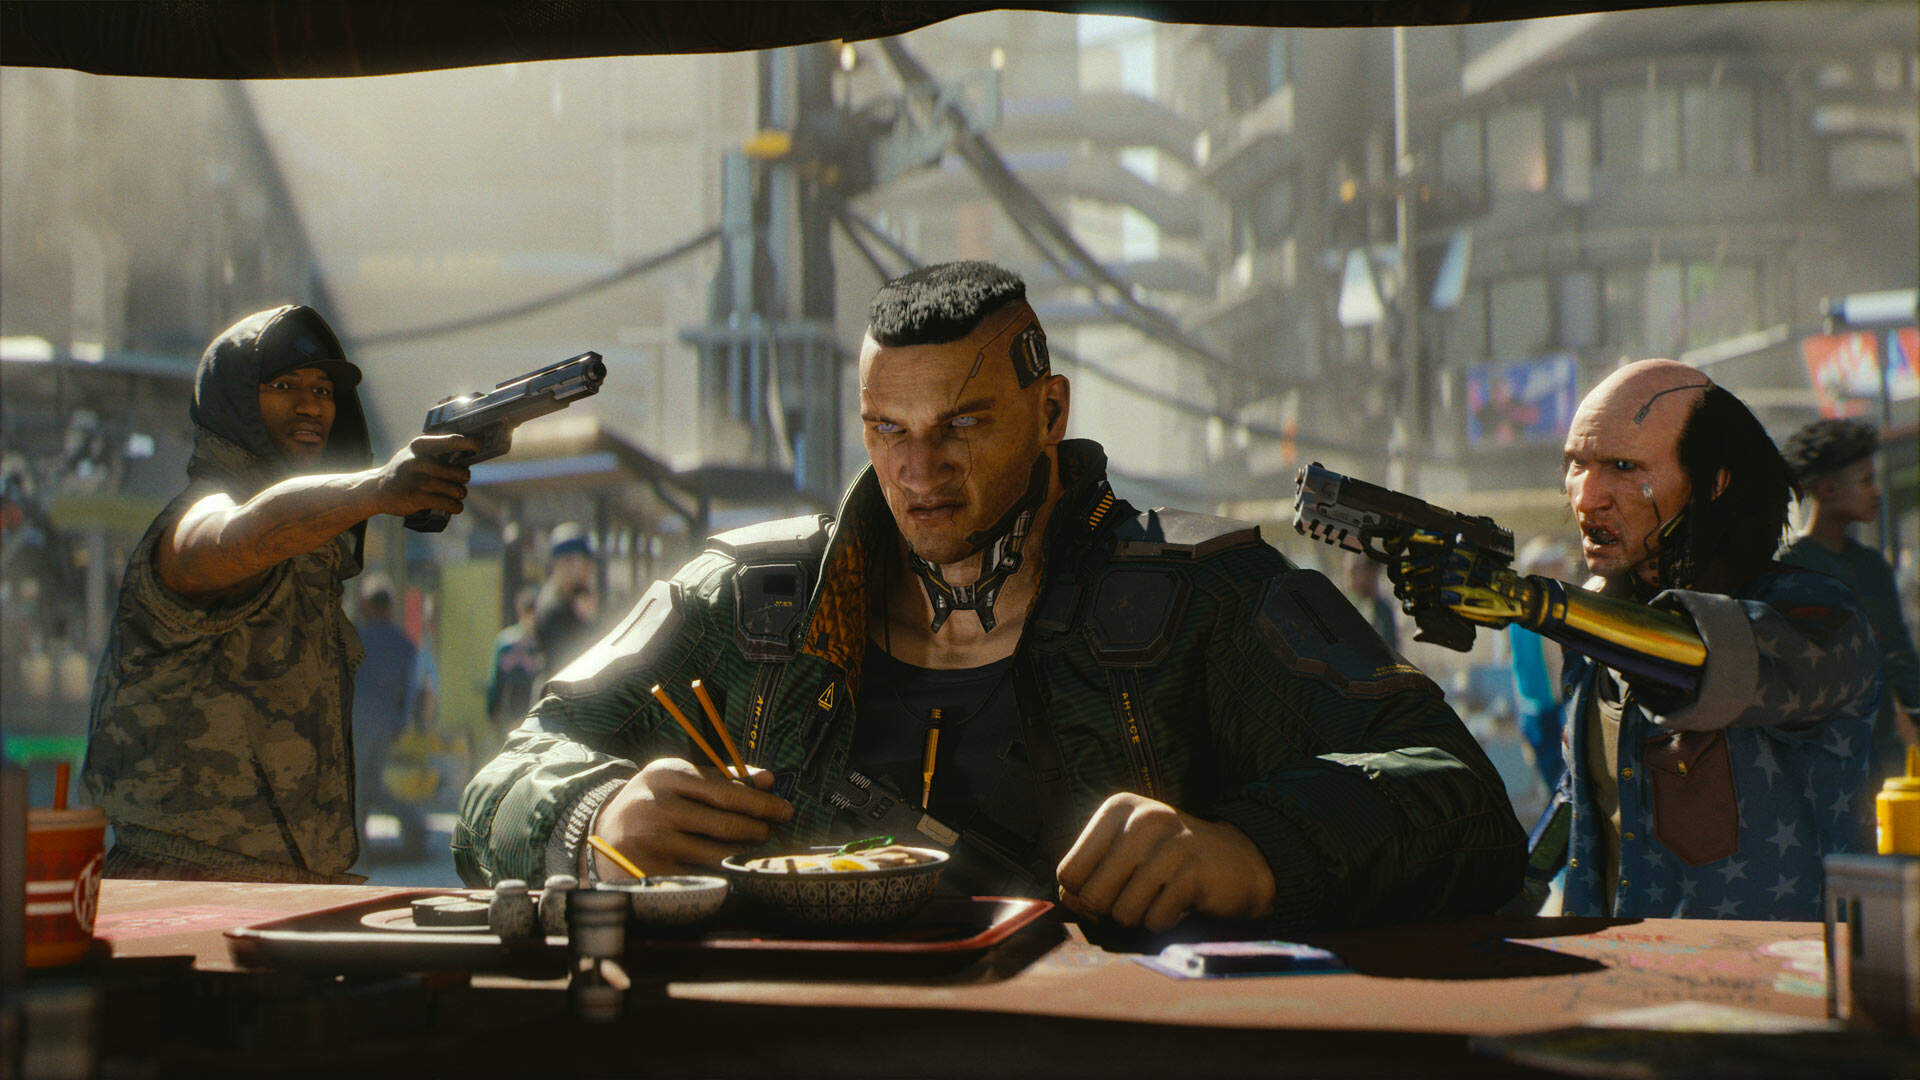 Cyberpunk 2077 Will Get Multiplayer Down the Line, CD Projekt Red Confirms